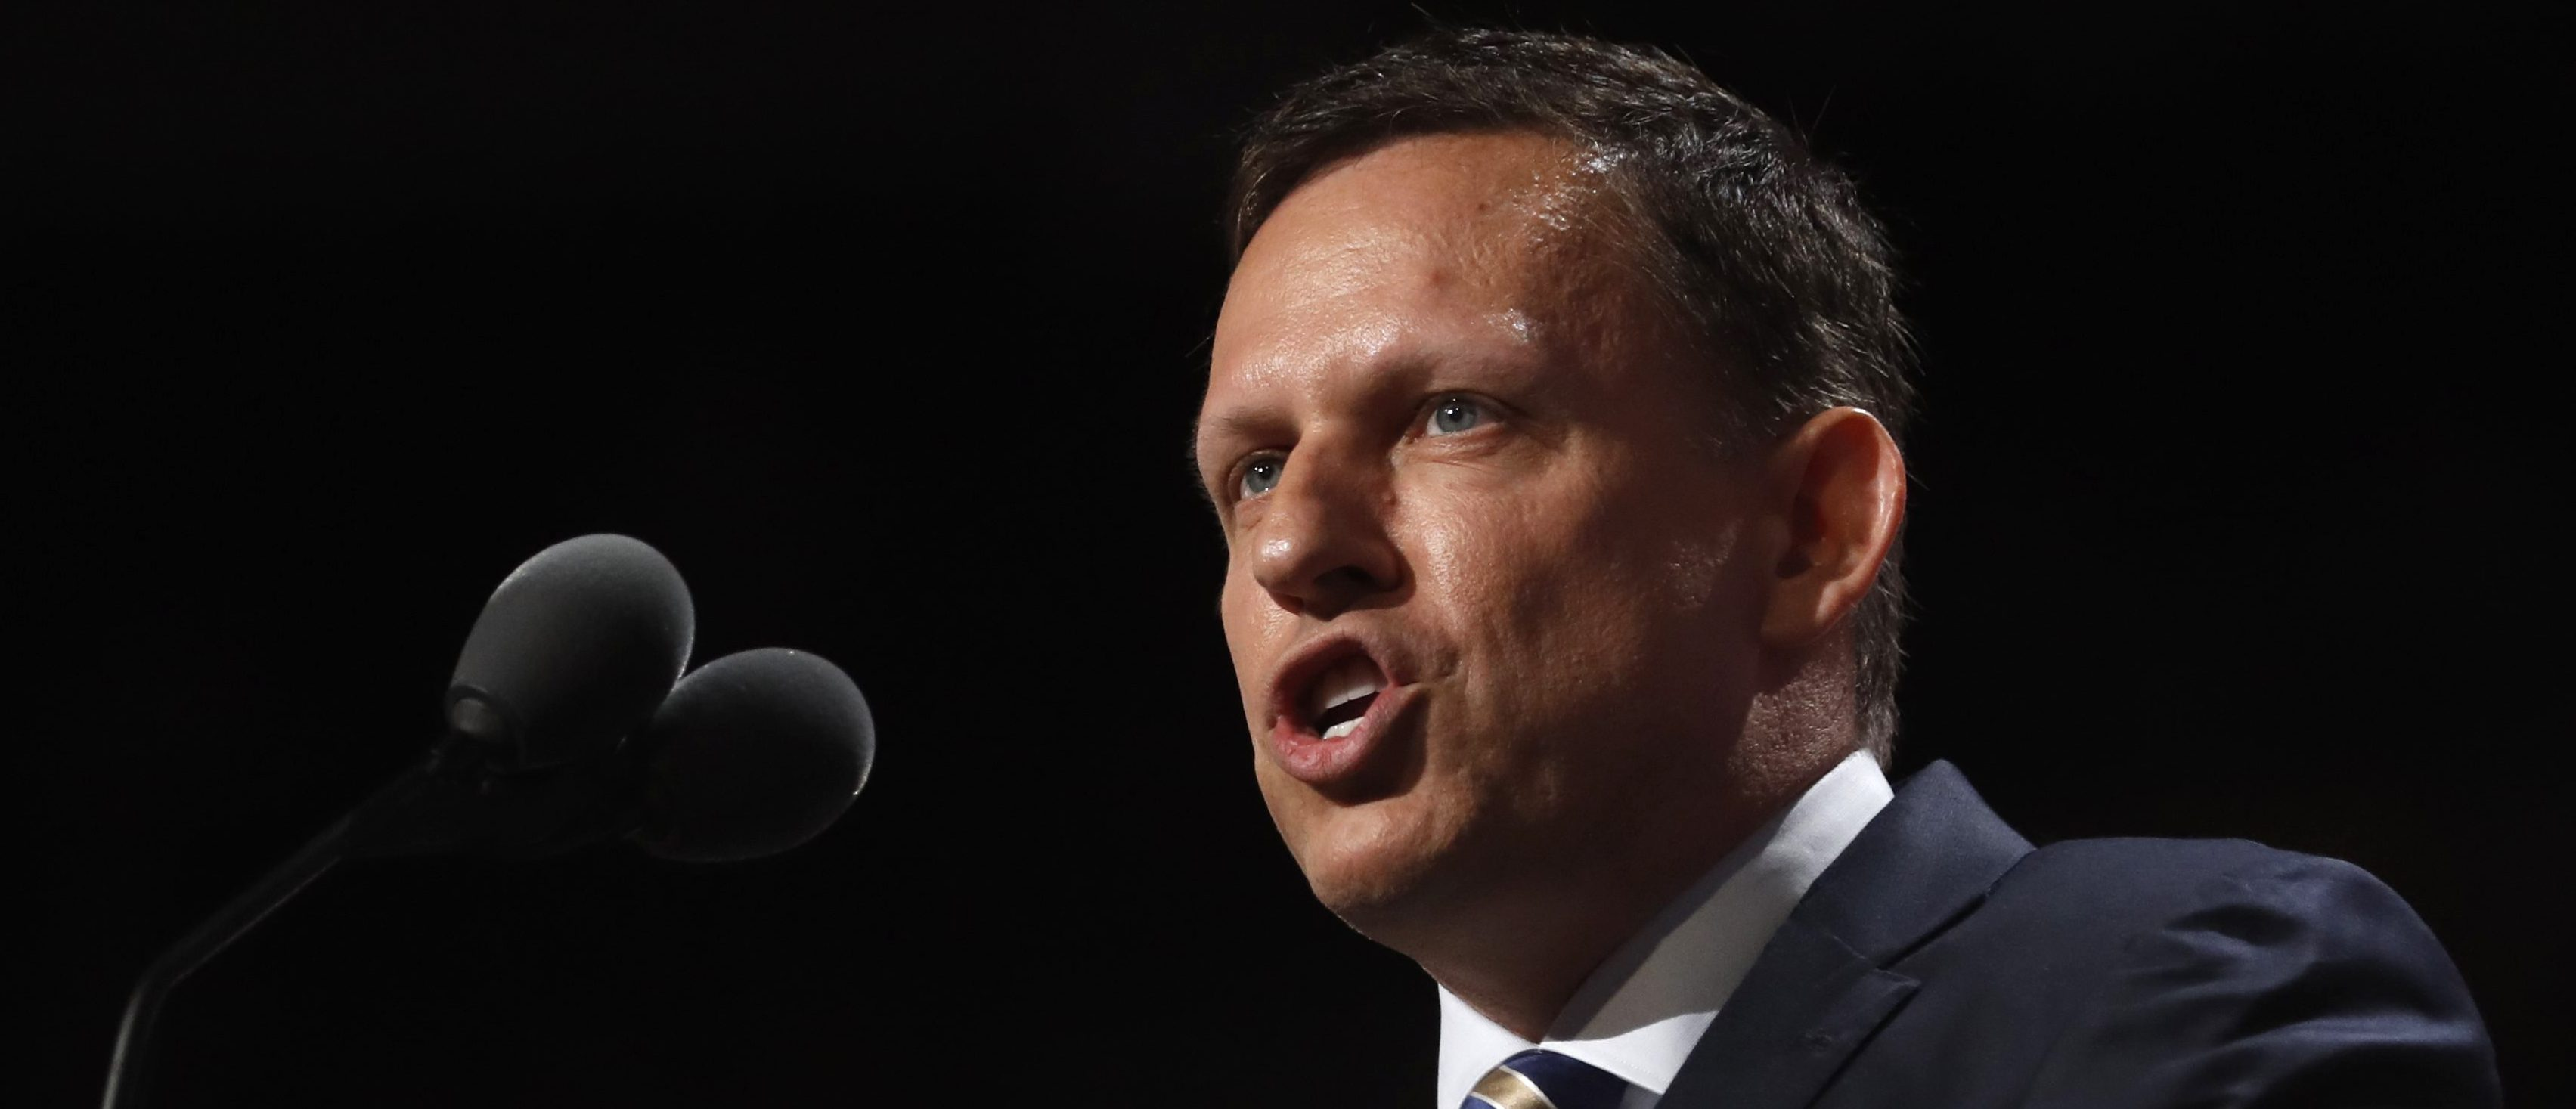 Peter Thiel, co-founder of PayPal, speaks at the Republican National Convention in Cleveland, Ohio, U.S., July 21 2016.   REUTERS/Jonathan Ernst   - RTSJ47R